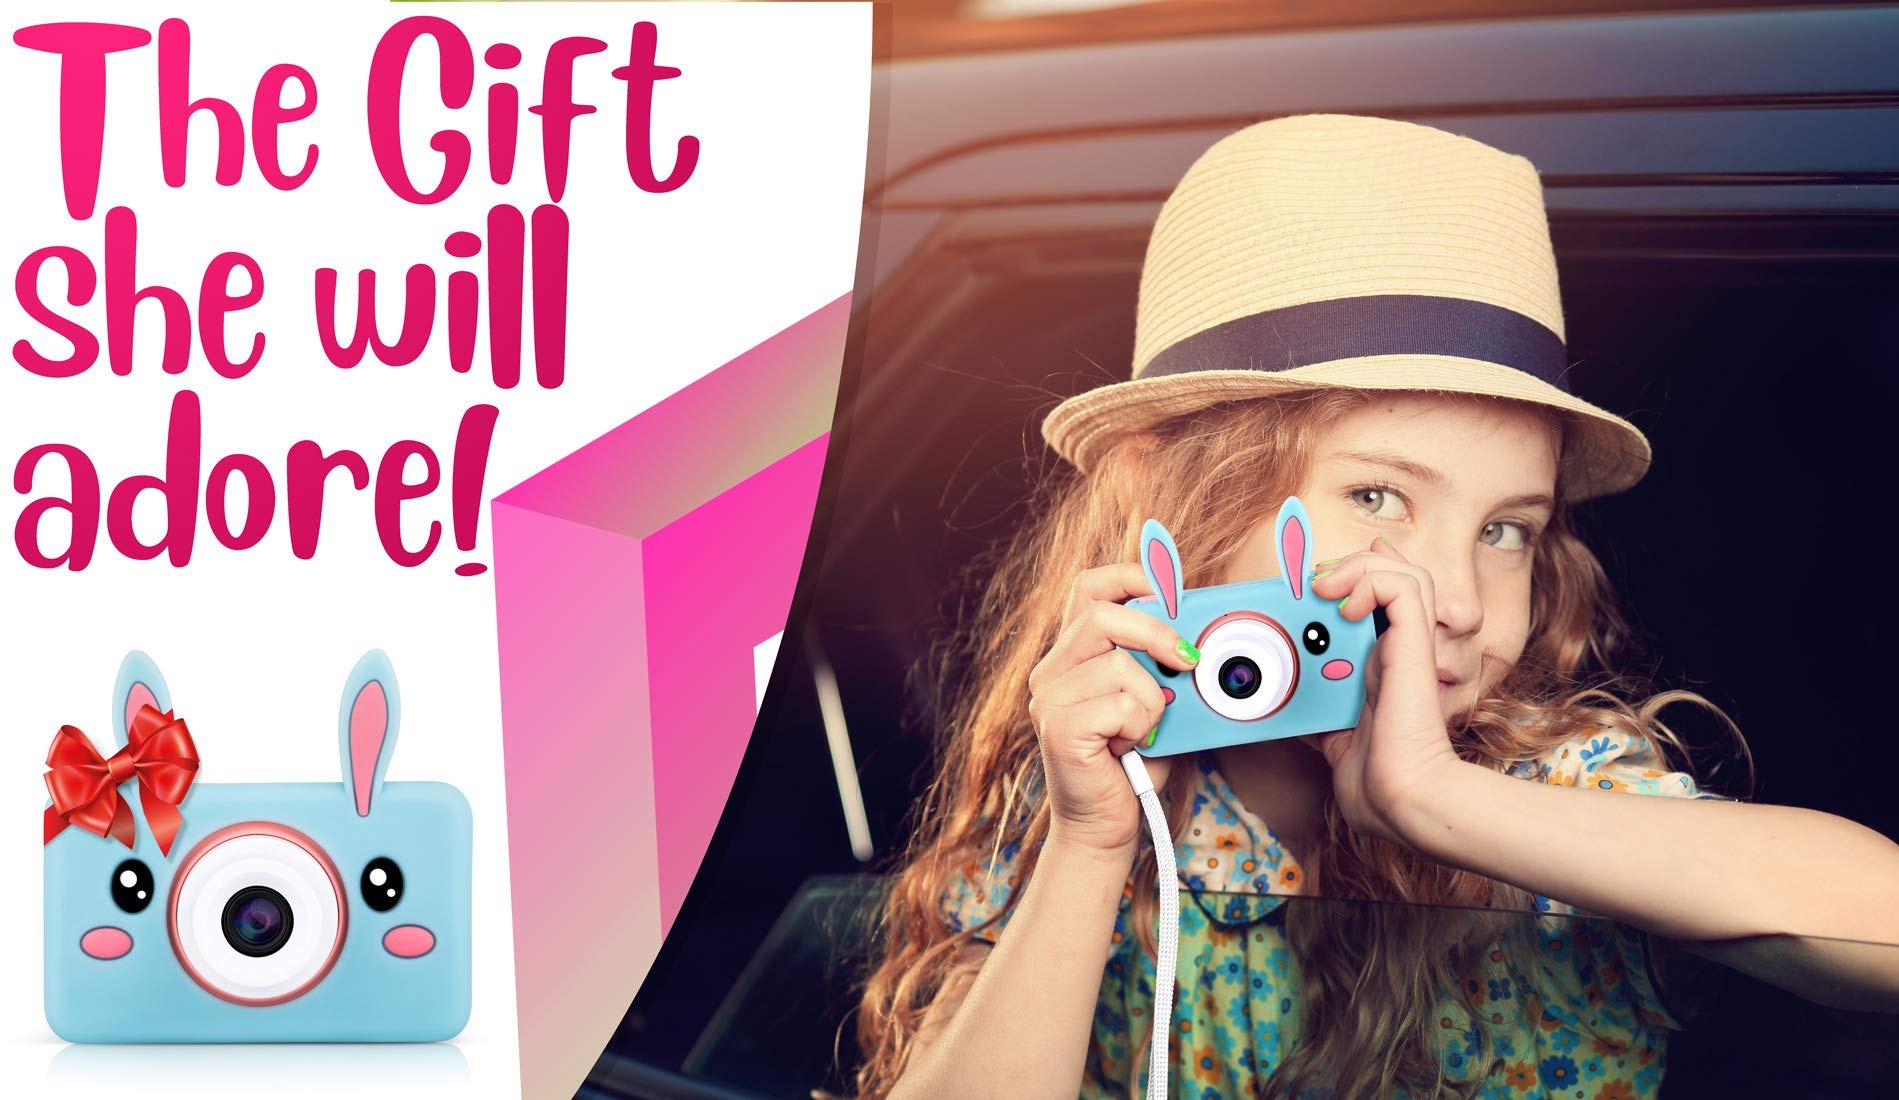 Lilexo Kids Camera - Children Shockproof Mini Digital Video Camcorder for Girls Gifts, Anti Slip Grip with Animal Silicone Cover for Extra Protection - 16GB Memory Card Included (Blue Rabbit) by Lilexo (Image #2)